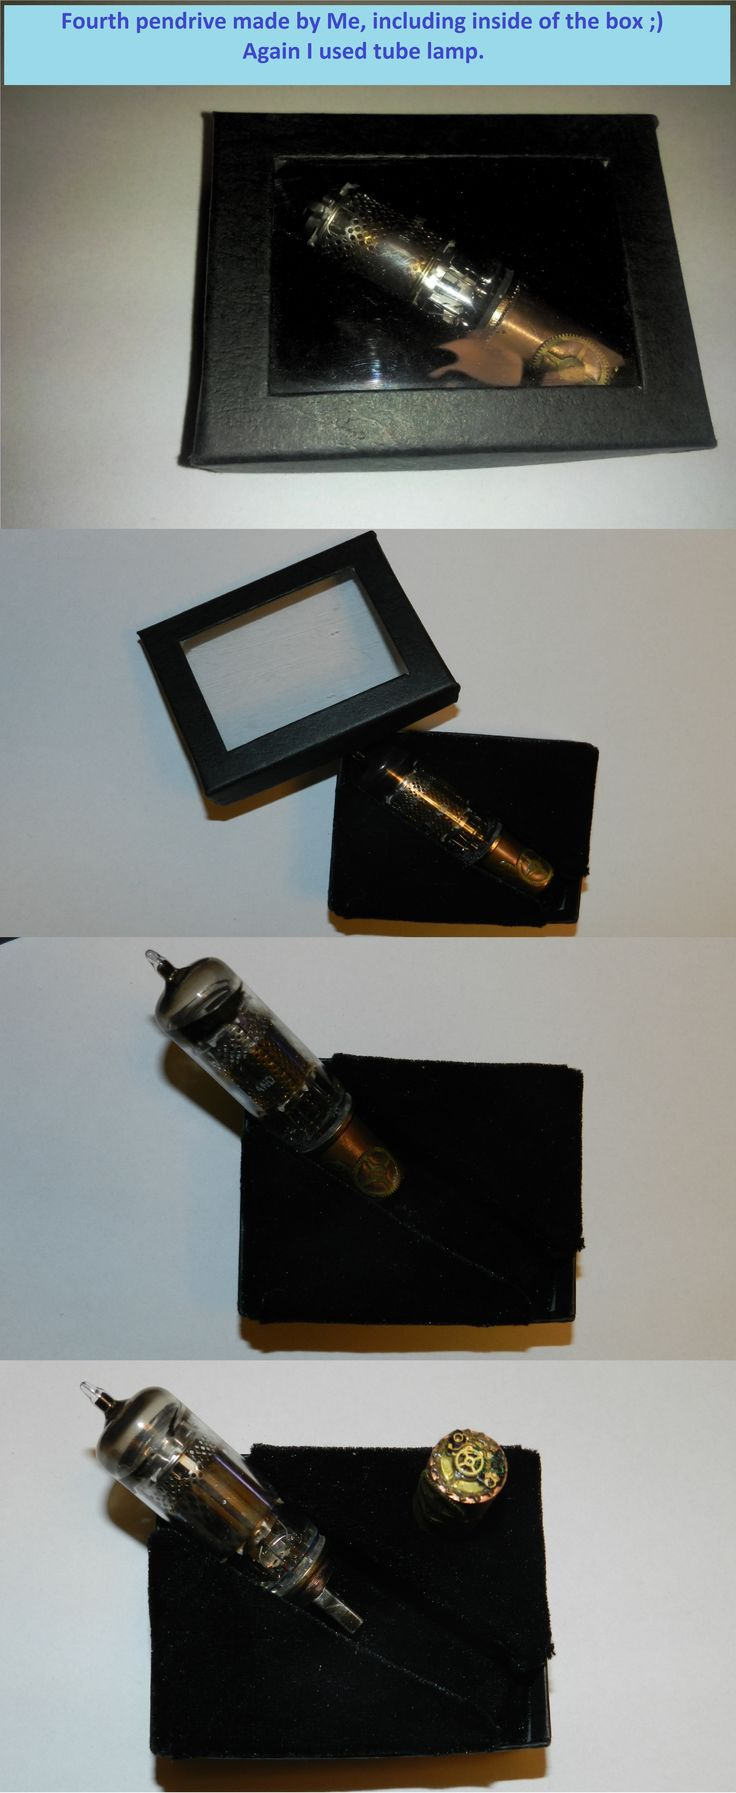 Fourth pendrive made by Me ;) Again tube lamp.